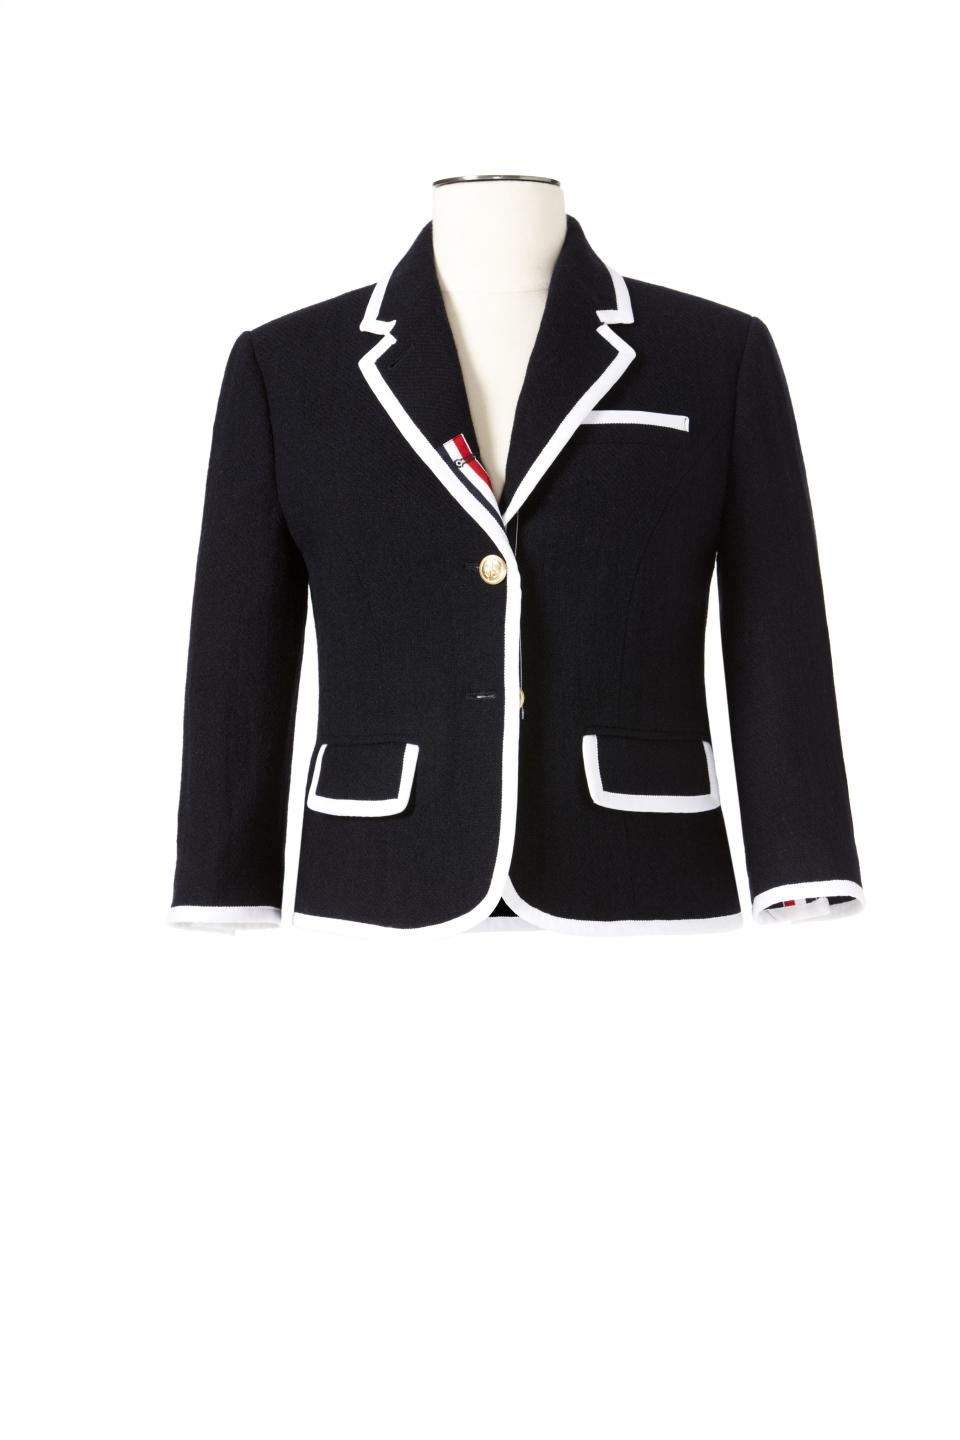 <b>Thom Browne for Target + Neiman Marcus Holiday Collection Women's and Men's Blazer</b><br><br> Women's Blazer Price: $129.99, Size: XS – XXL <br><br> Men's Blazer Price: $149.99, Size: S – XL <br><br> Women's Blazer pictured.<br><br>